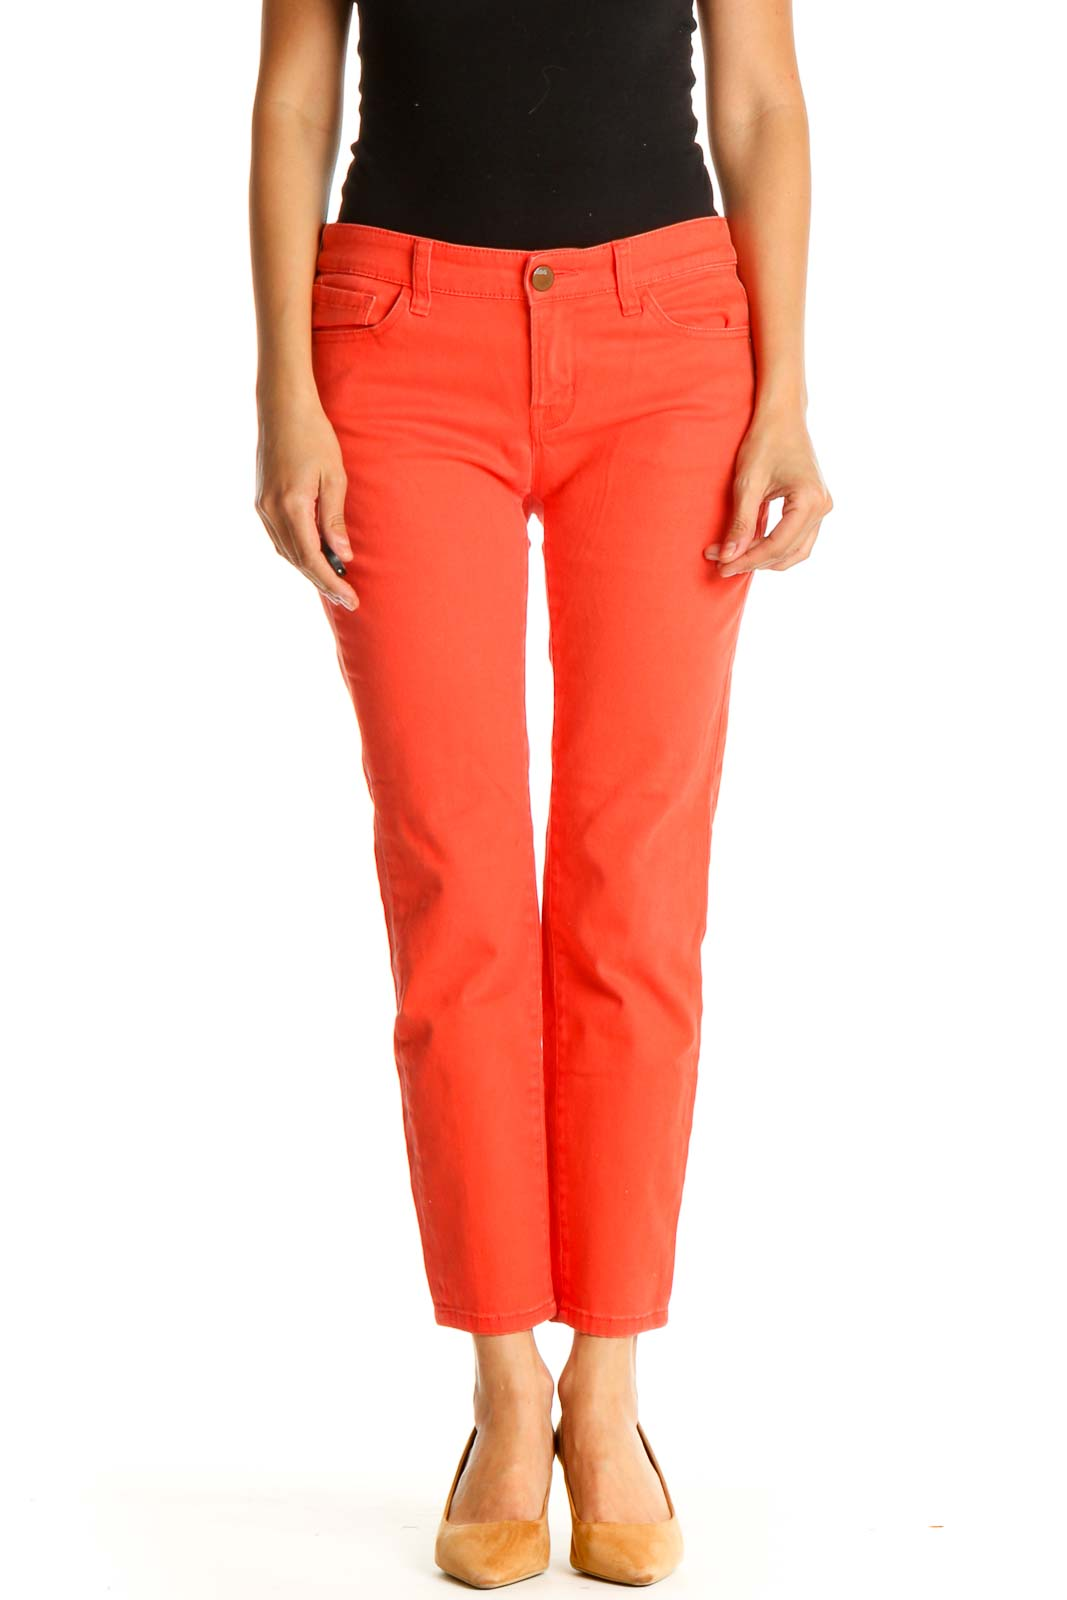 Red Solid Casual Capri Pants Front